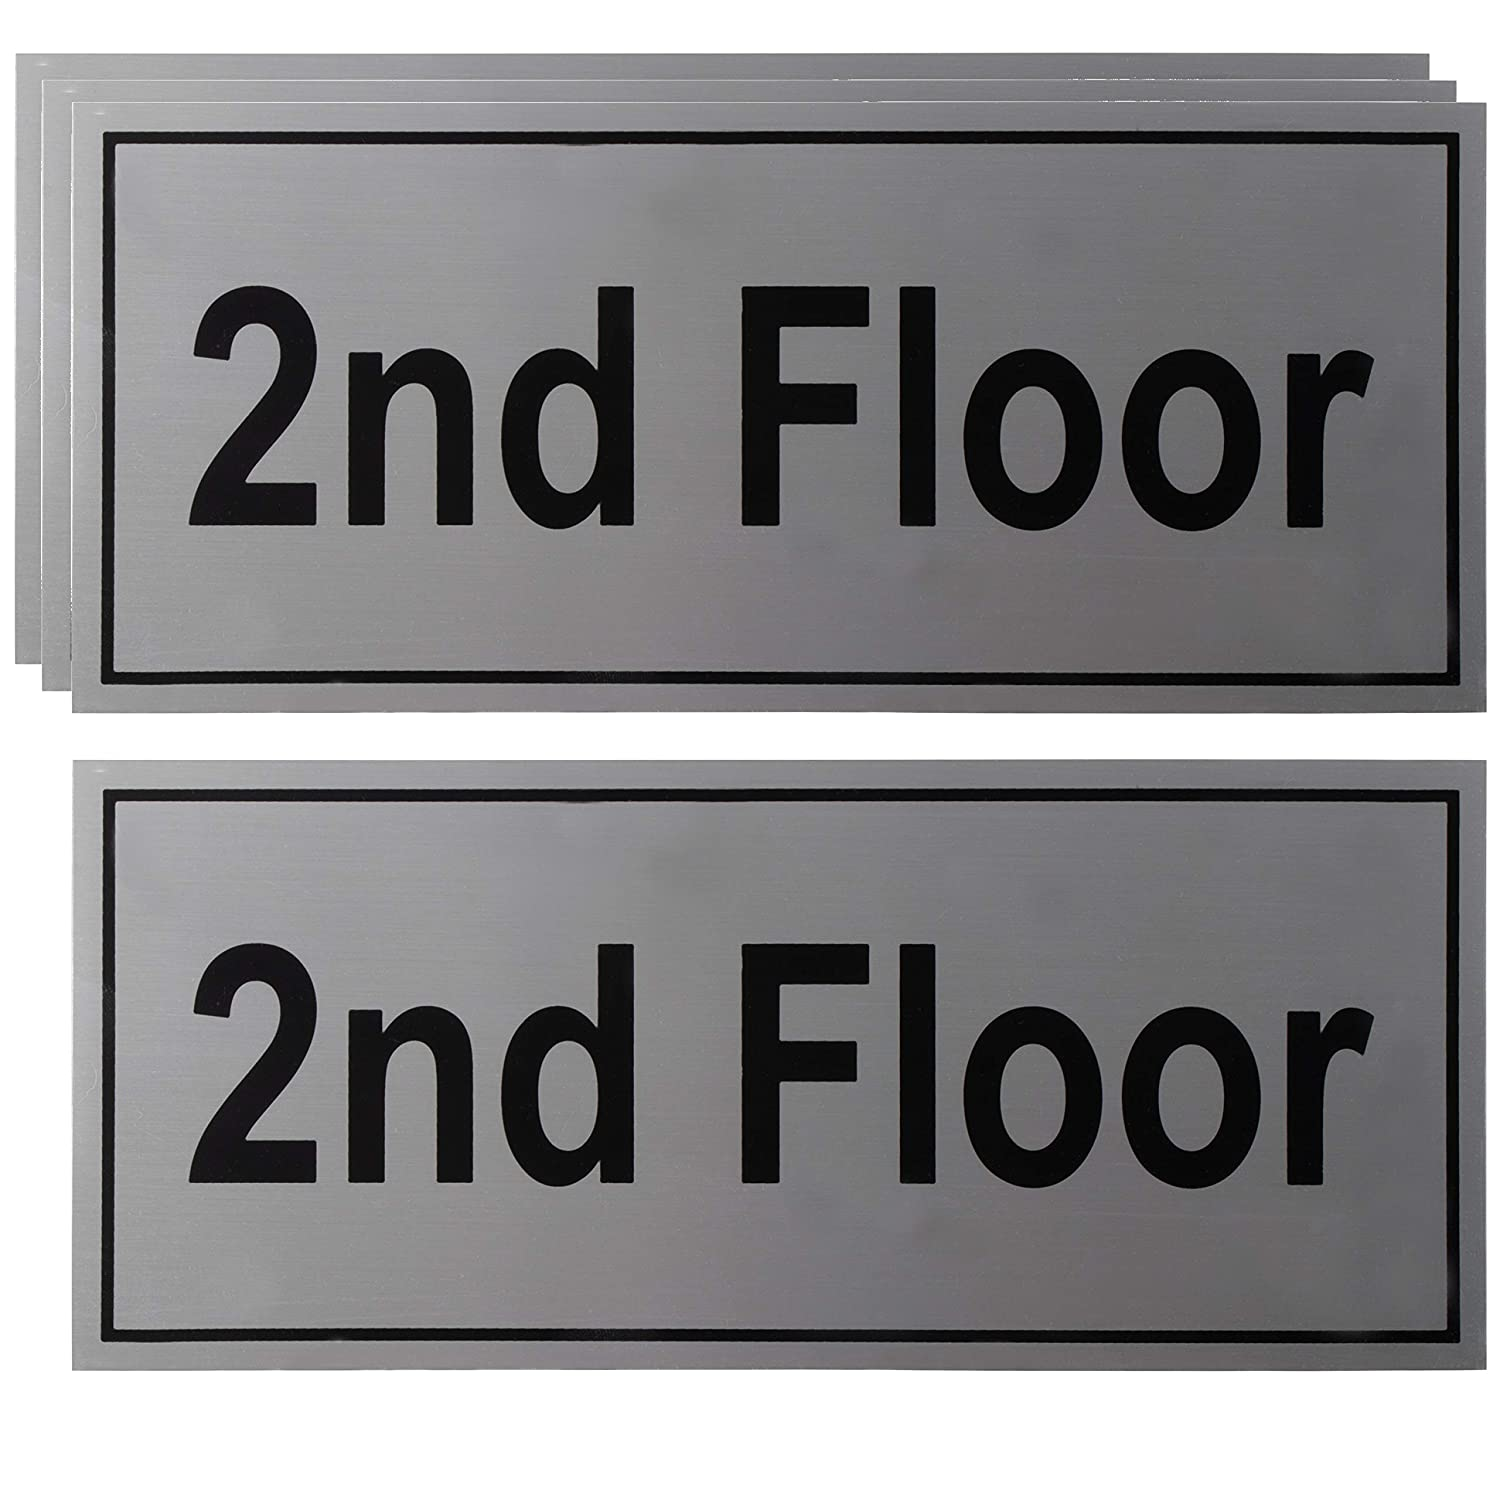 2nd Floor Sign - 4-Pack Elevator Floor Number Label, Peel and Stick, Rust Free Aluminum with Self-Adhesive Backing, Black on Silver, 4 x 11.7 Inches